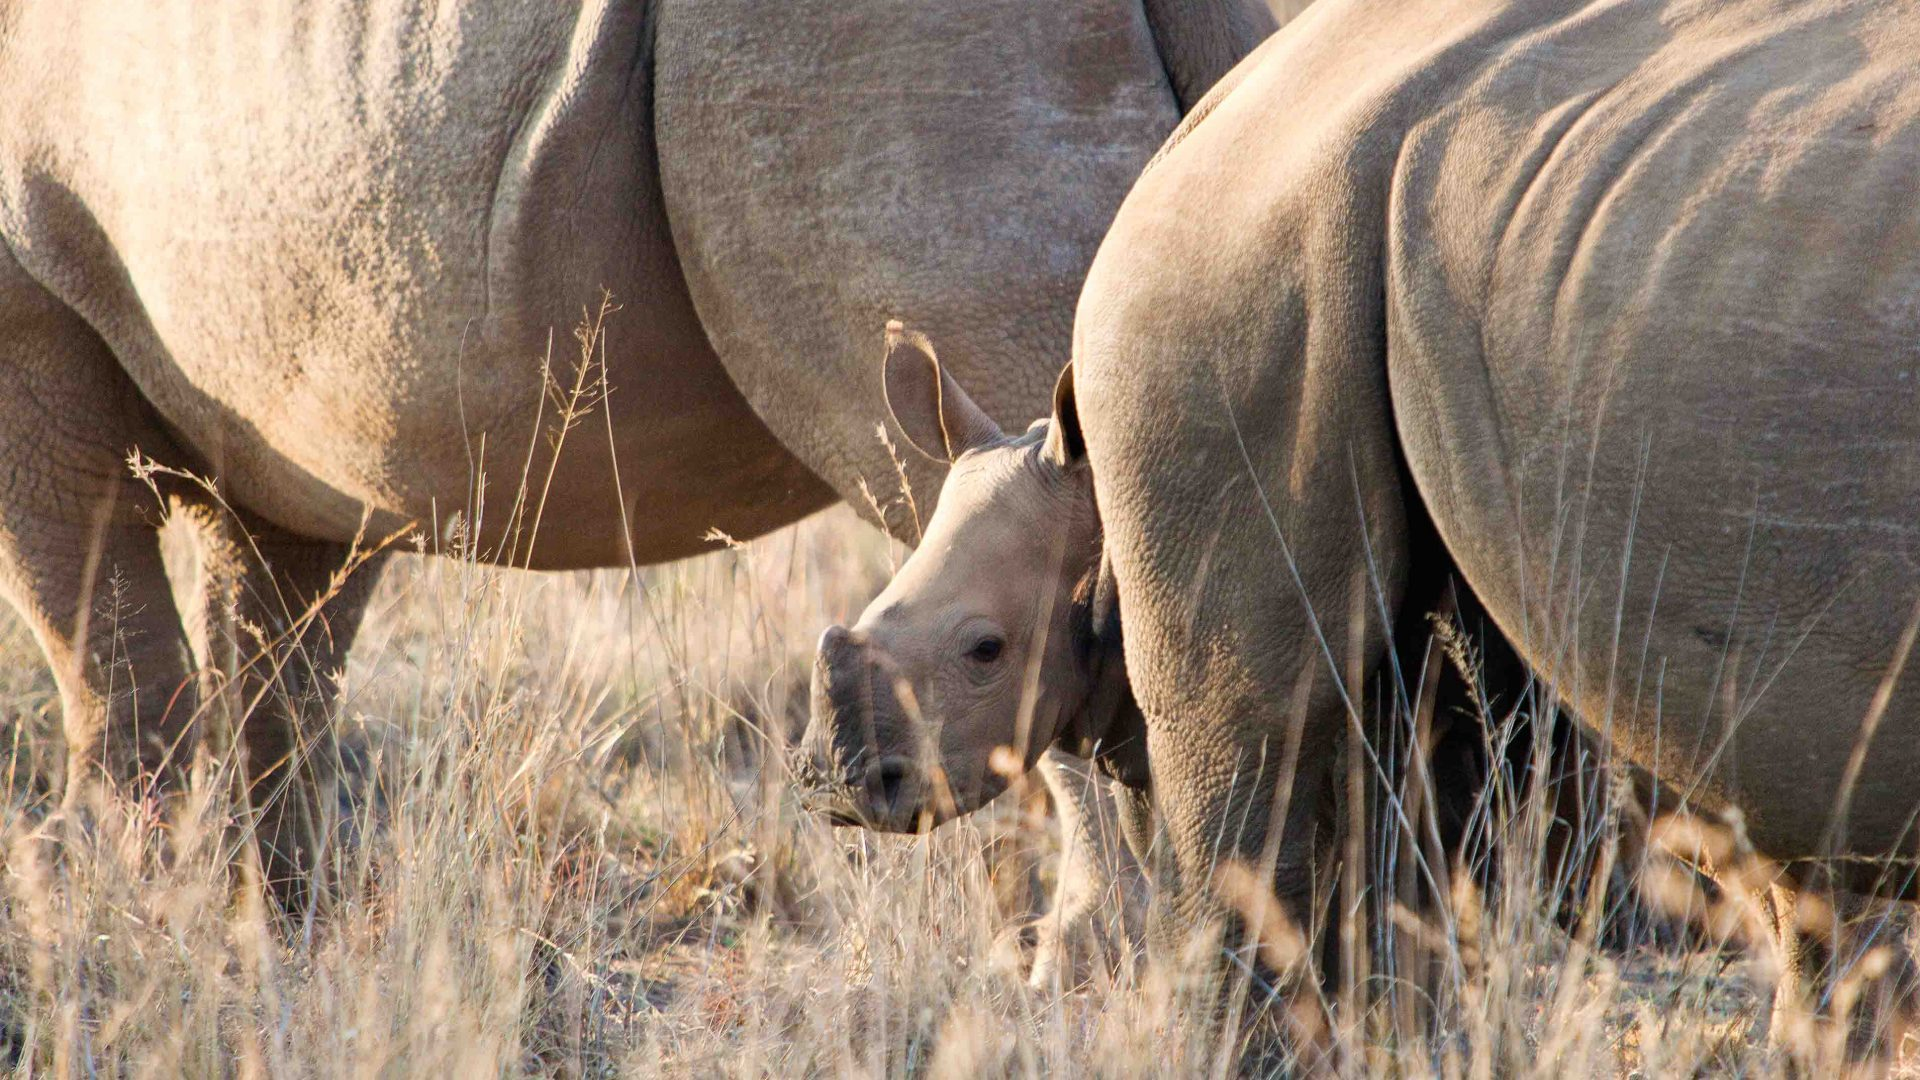 White rhino in Balule Nature Reserve in South Africa.